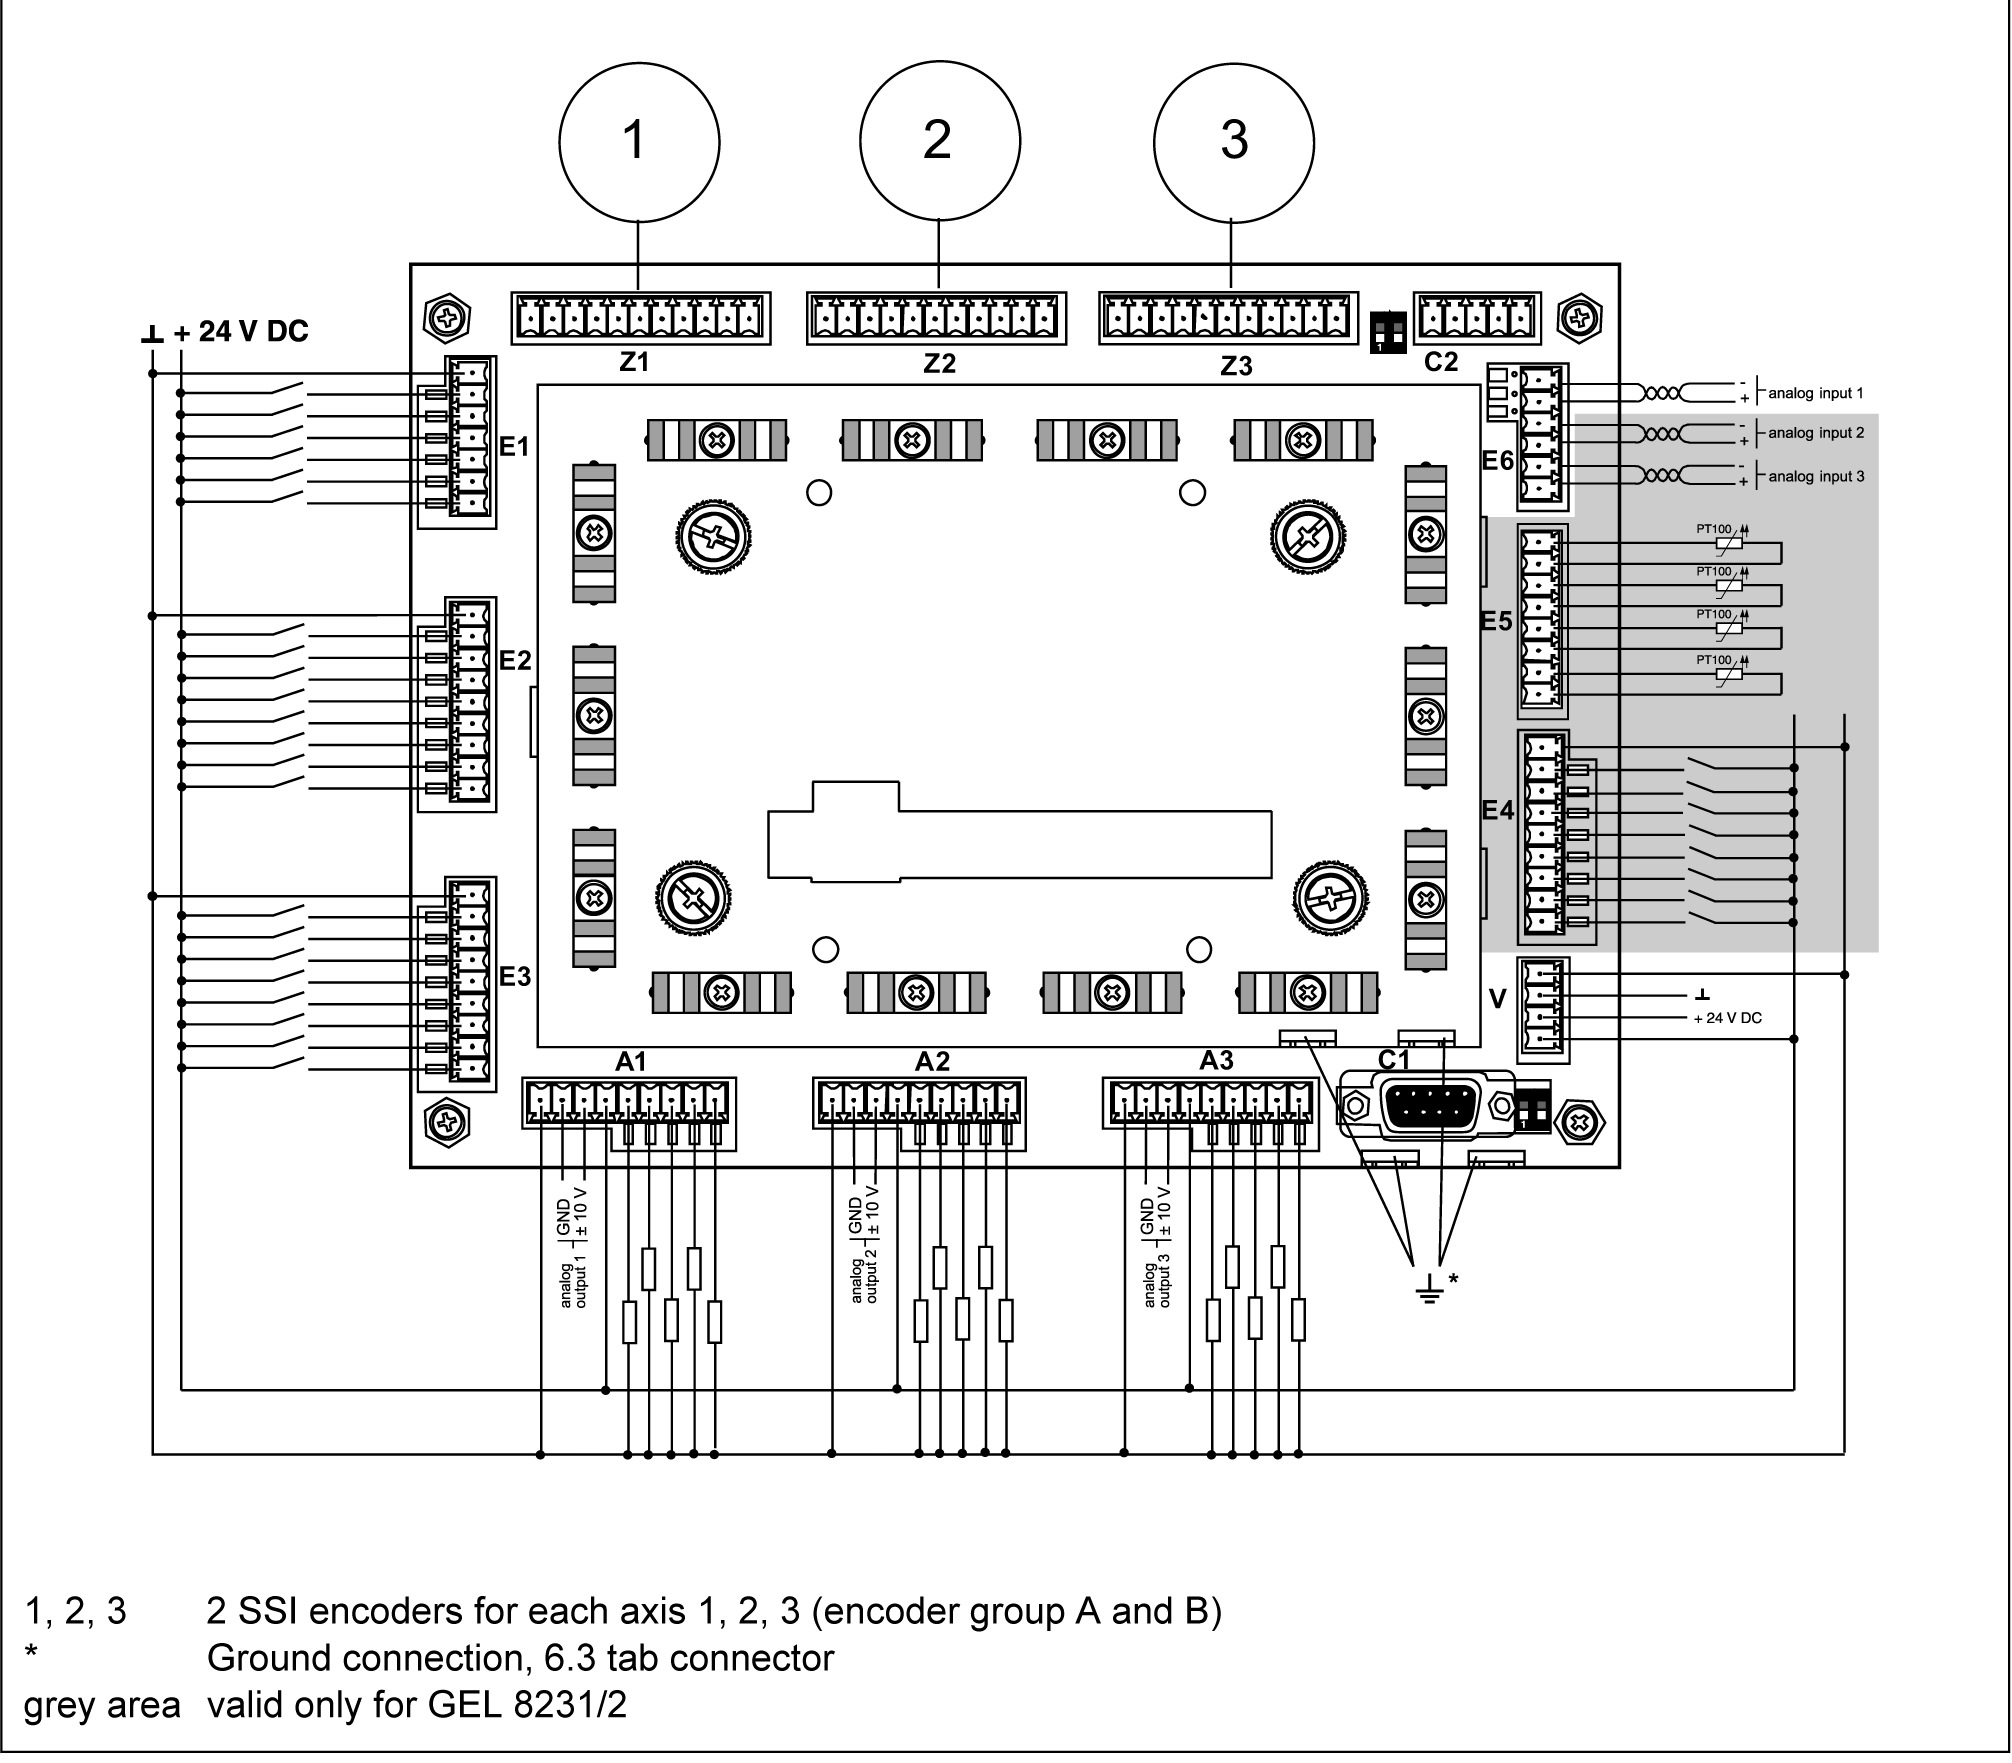 Motioncontroller Gel 8231 Lenord Bauer Rail Speed Sensors Logic Diagram For 8 To 3 Encoder Rear Side With Connection Overview